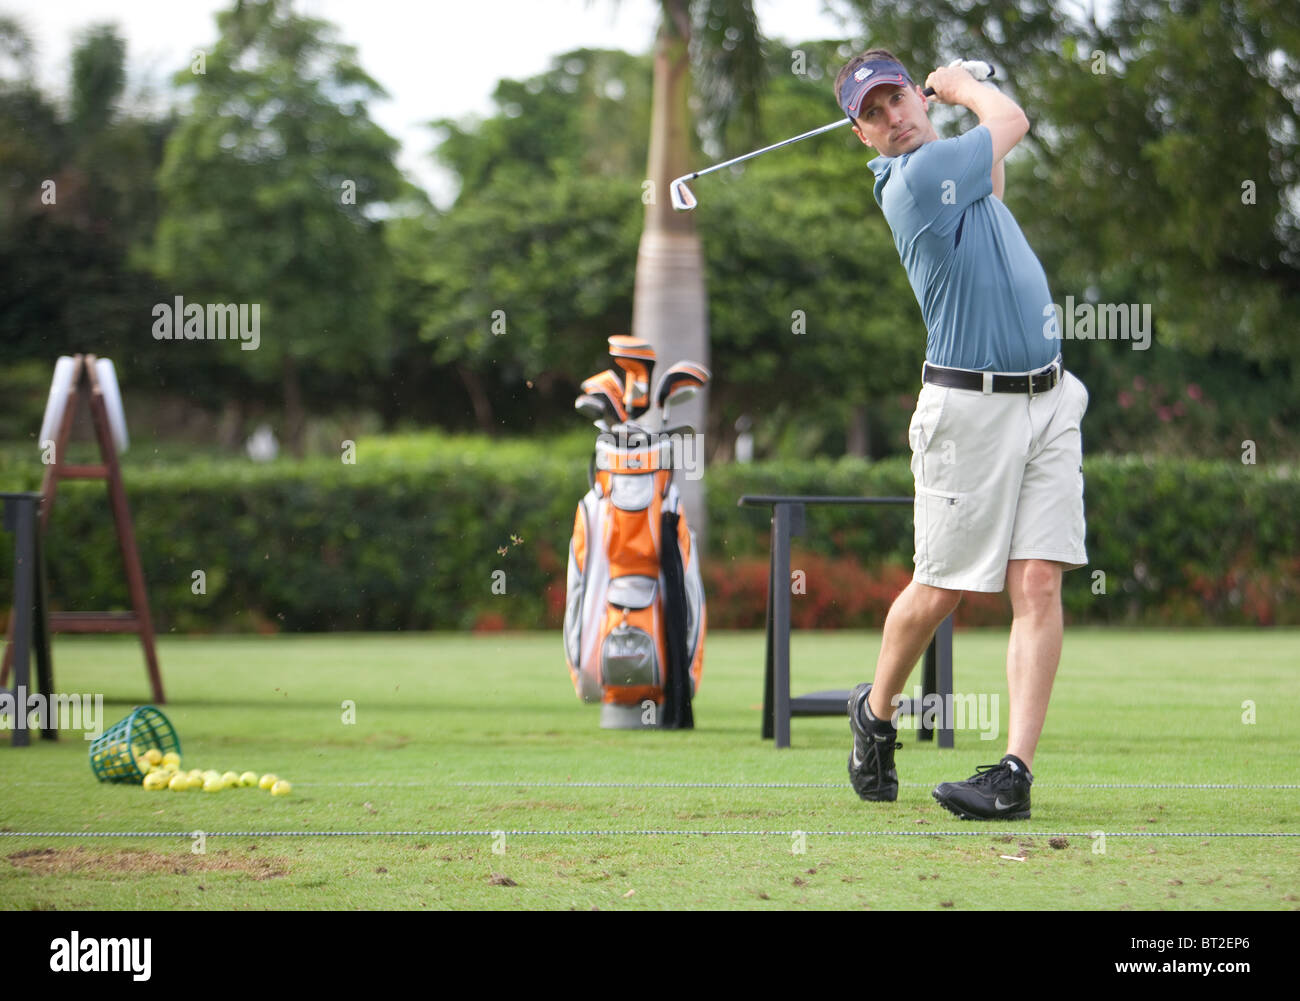 Male golfer hits the ball on the driving range. - Stock Image